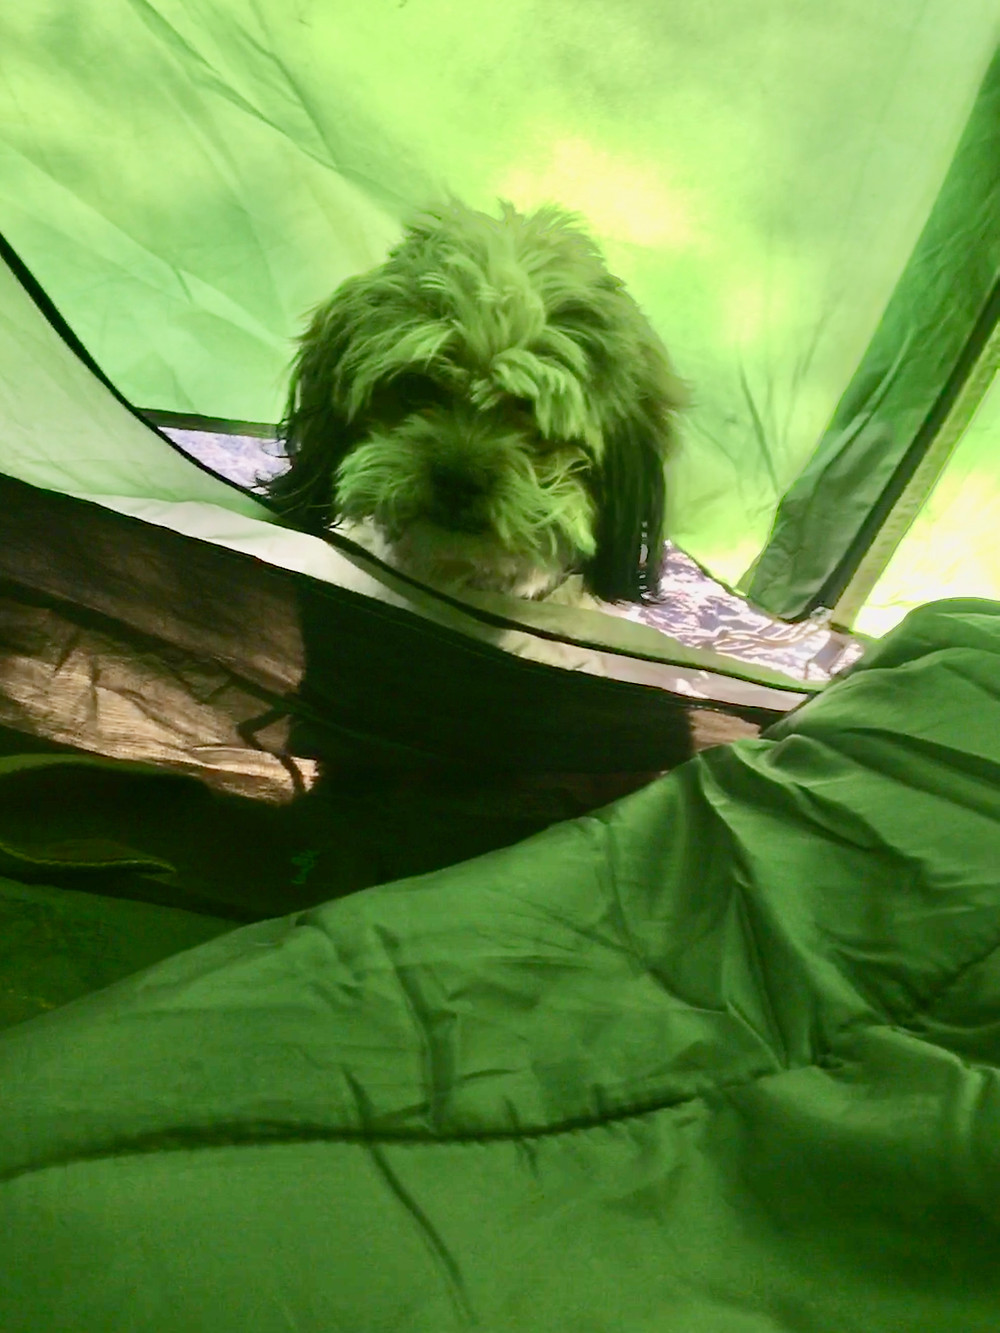 S'mores the shaggy maltese - poodle - shih tzu desperately tries to escape the cold climate of Bryce Canyon National Park by poking his head inside a tent